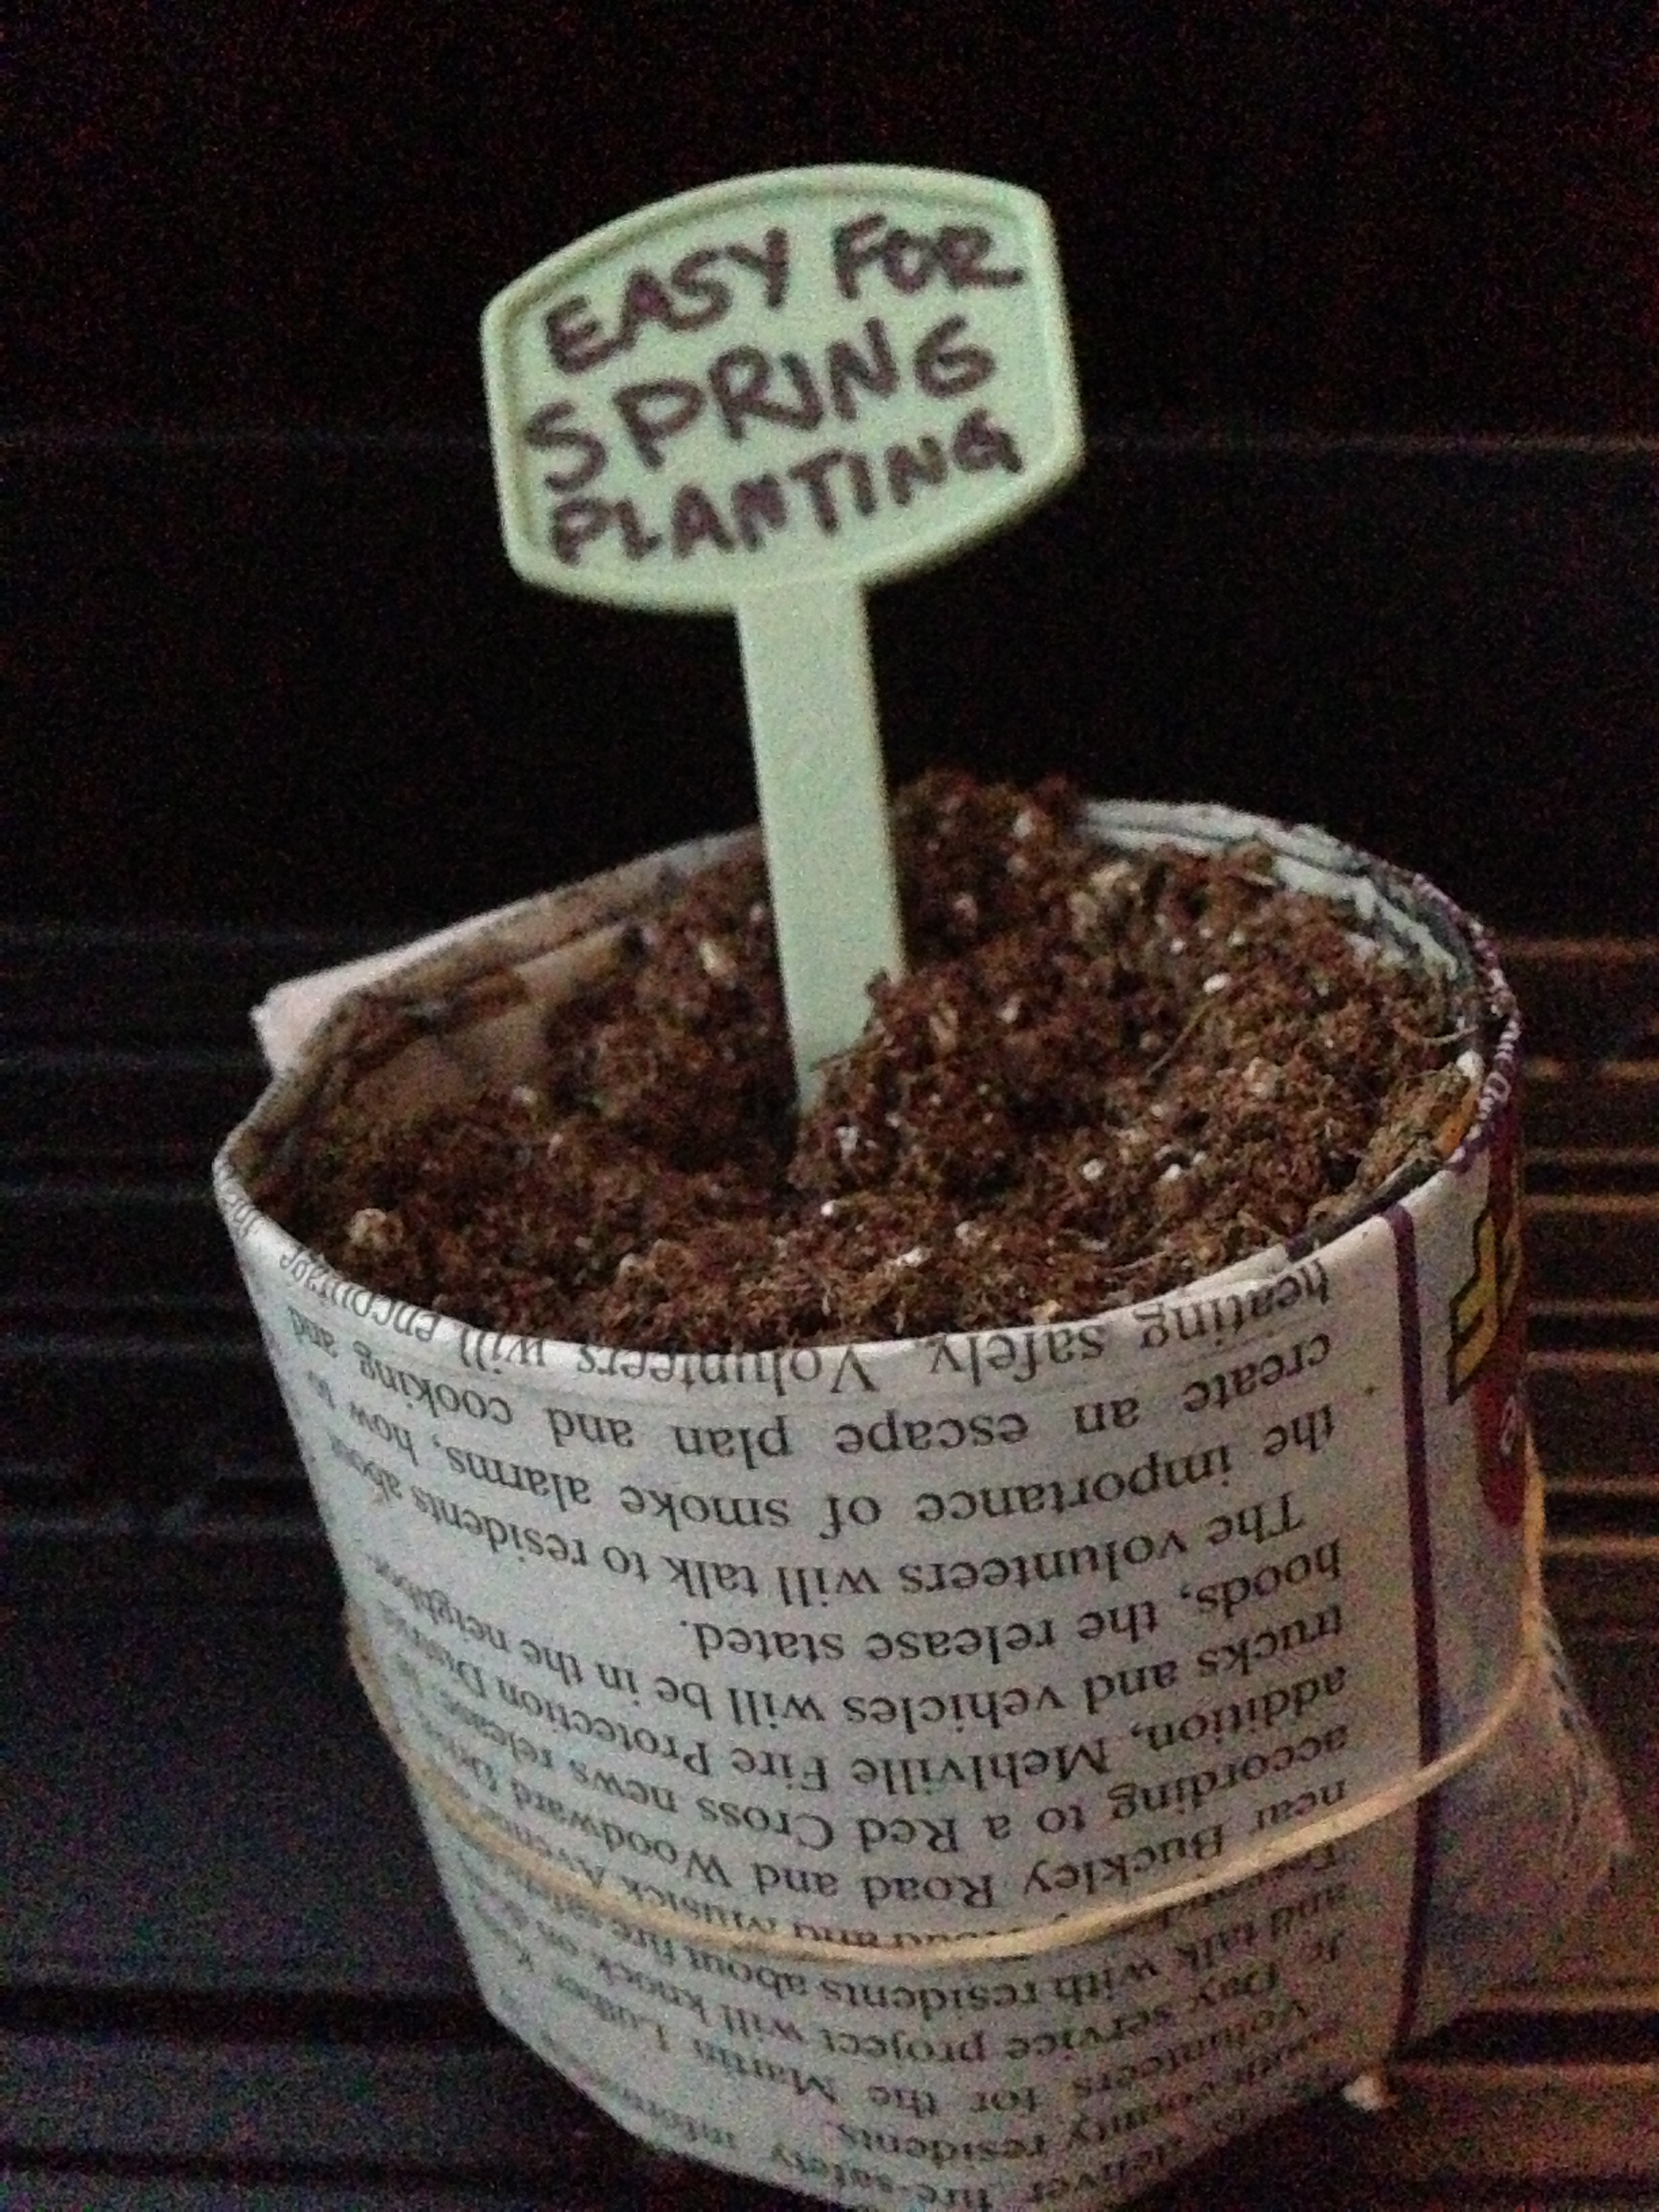 EASY Eco-friendly Garden Pots for free! Recycled, green, newspaper seed planting pots for spring!